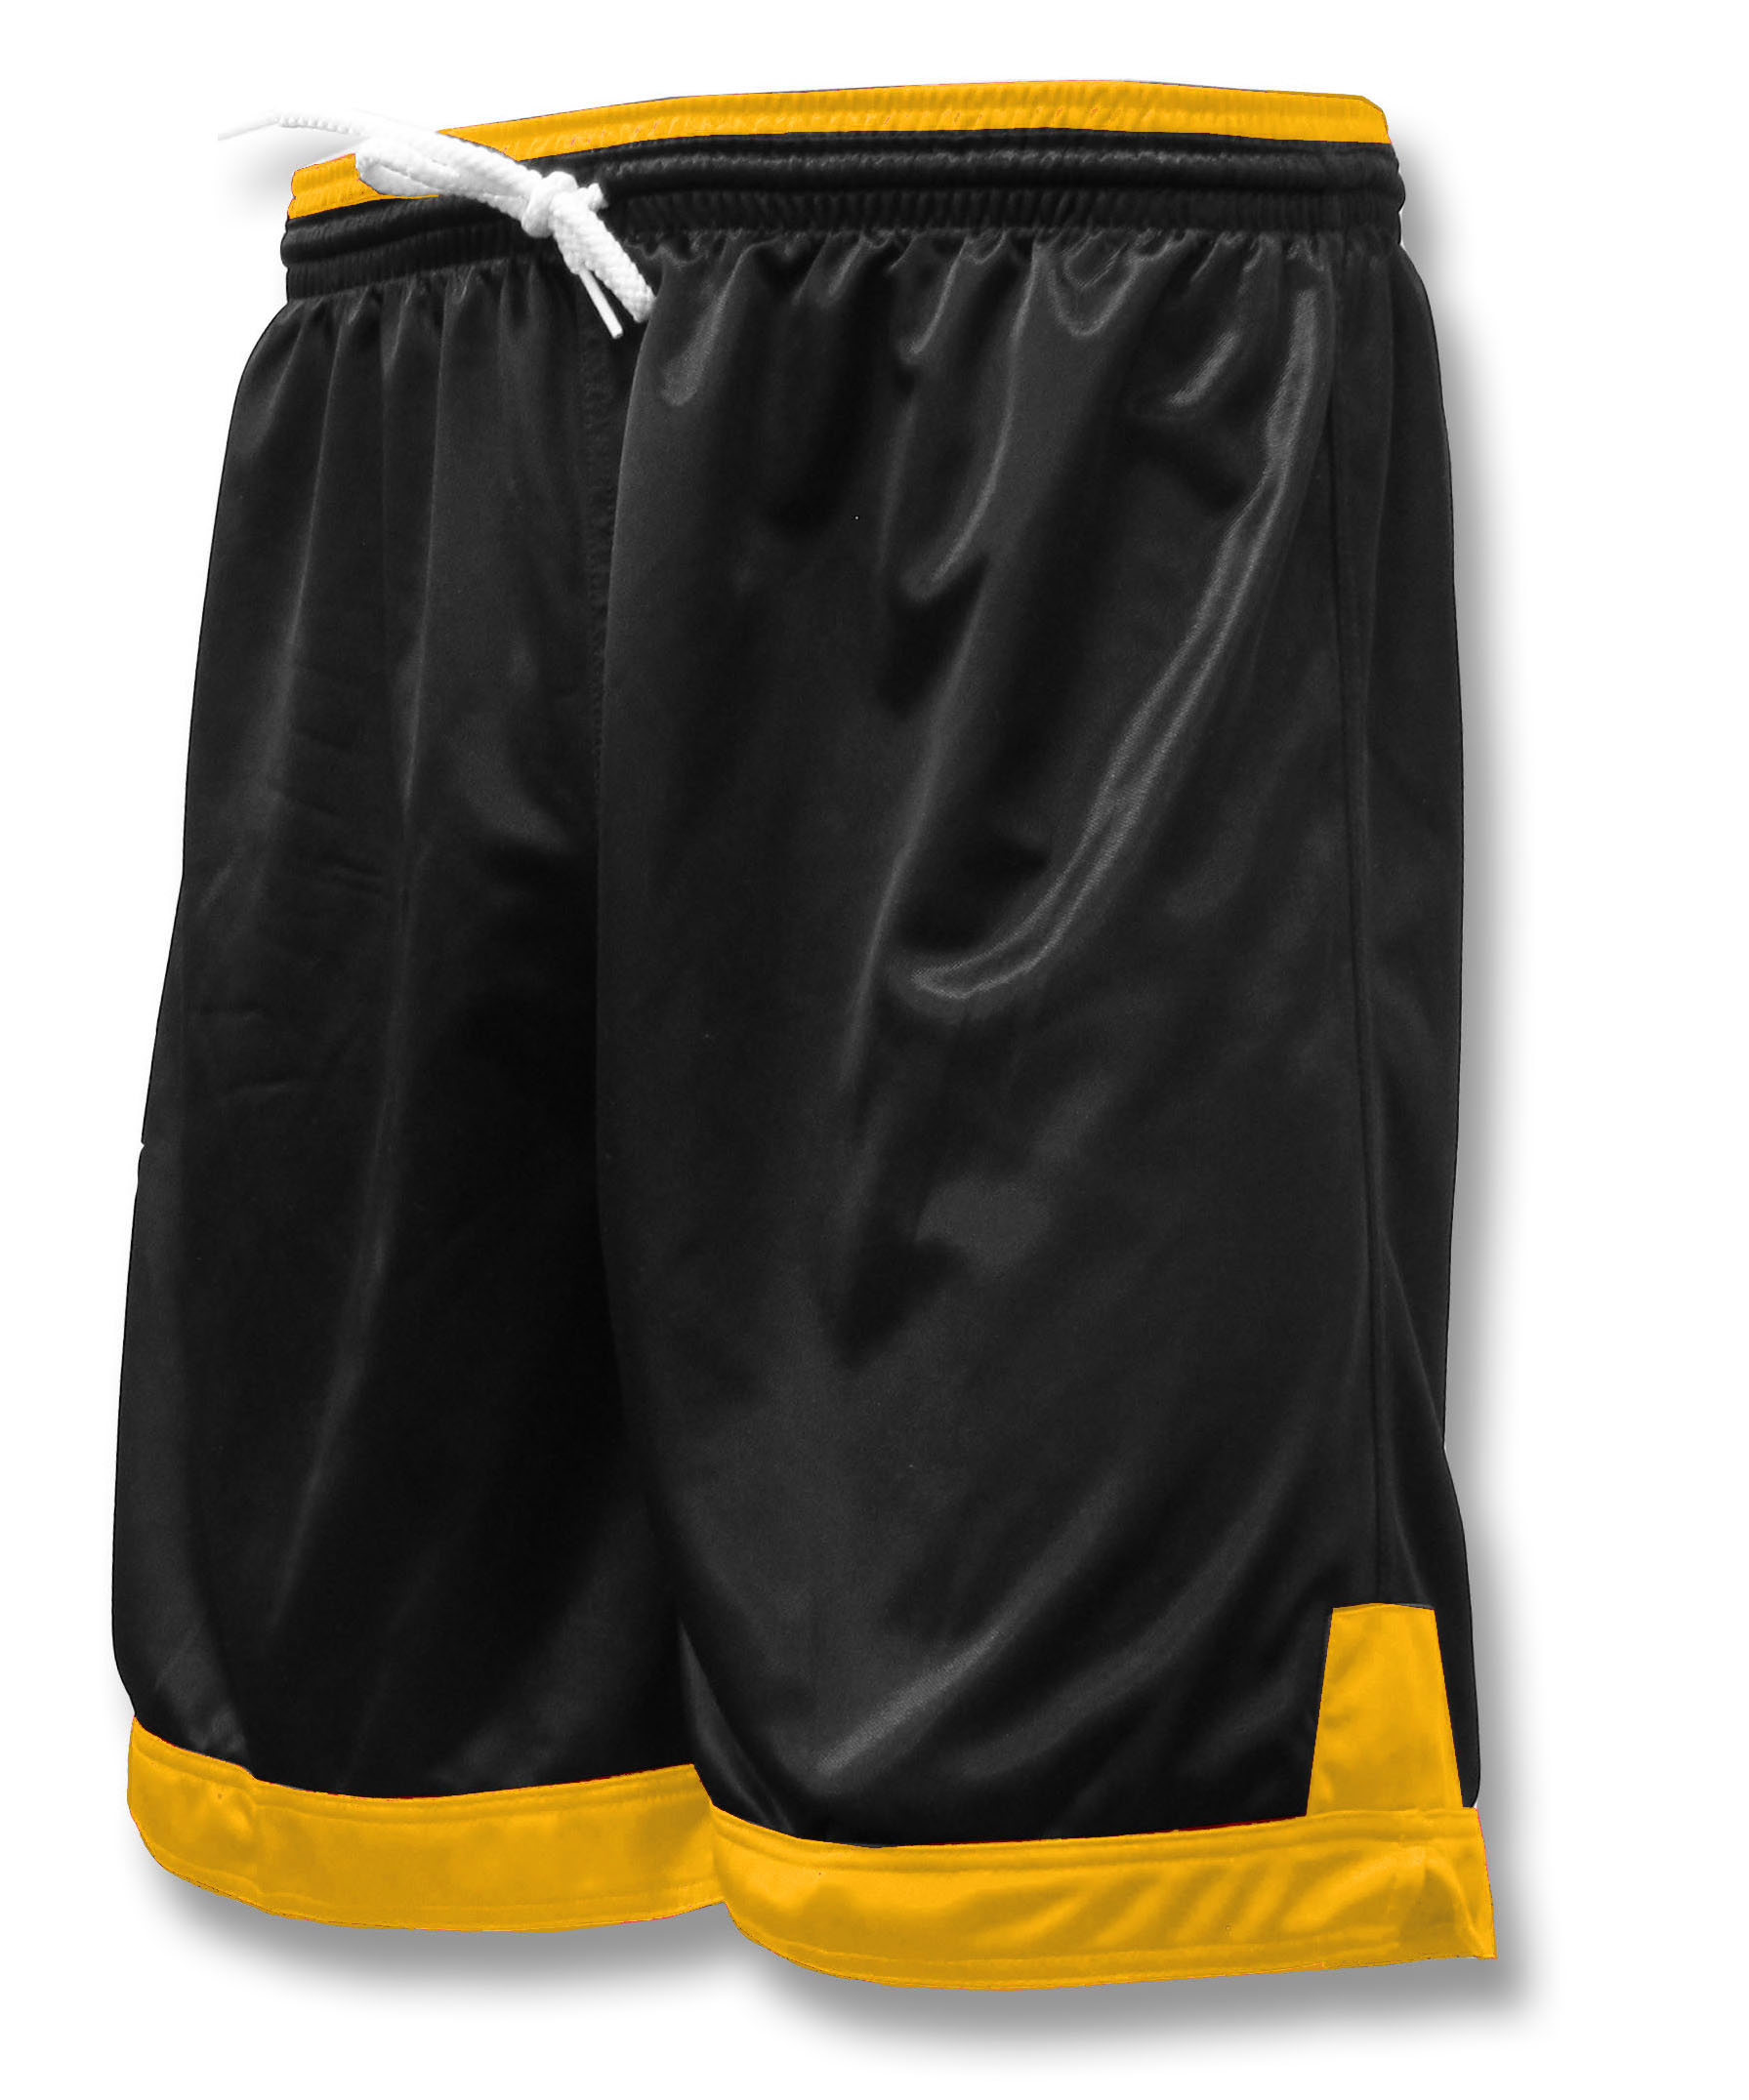 Winchester soccer shorts in black / gold by Code Four Athletics